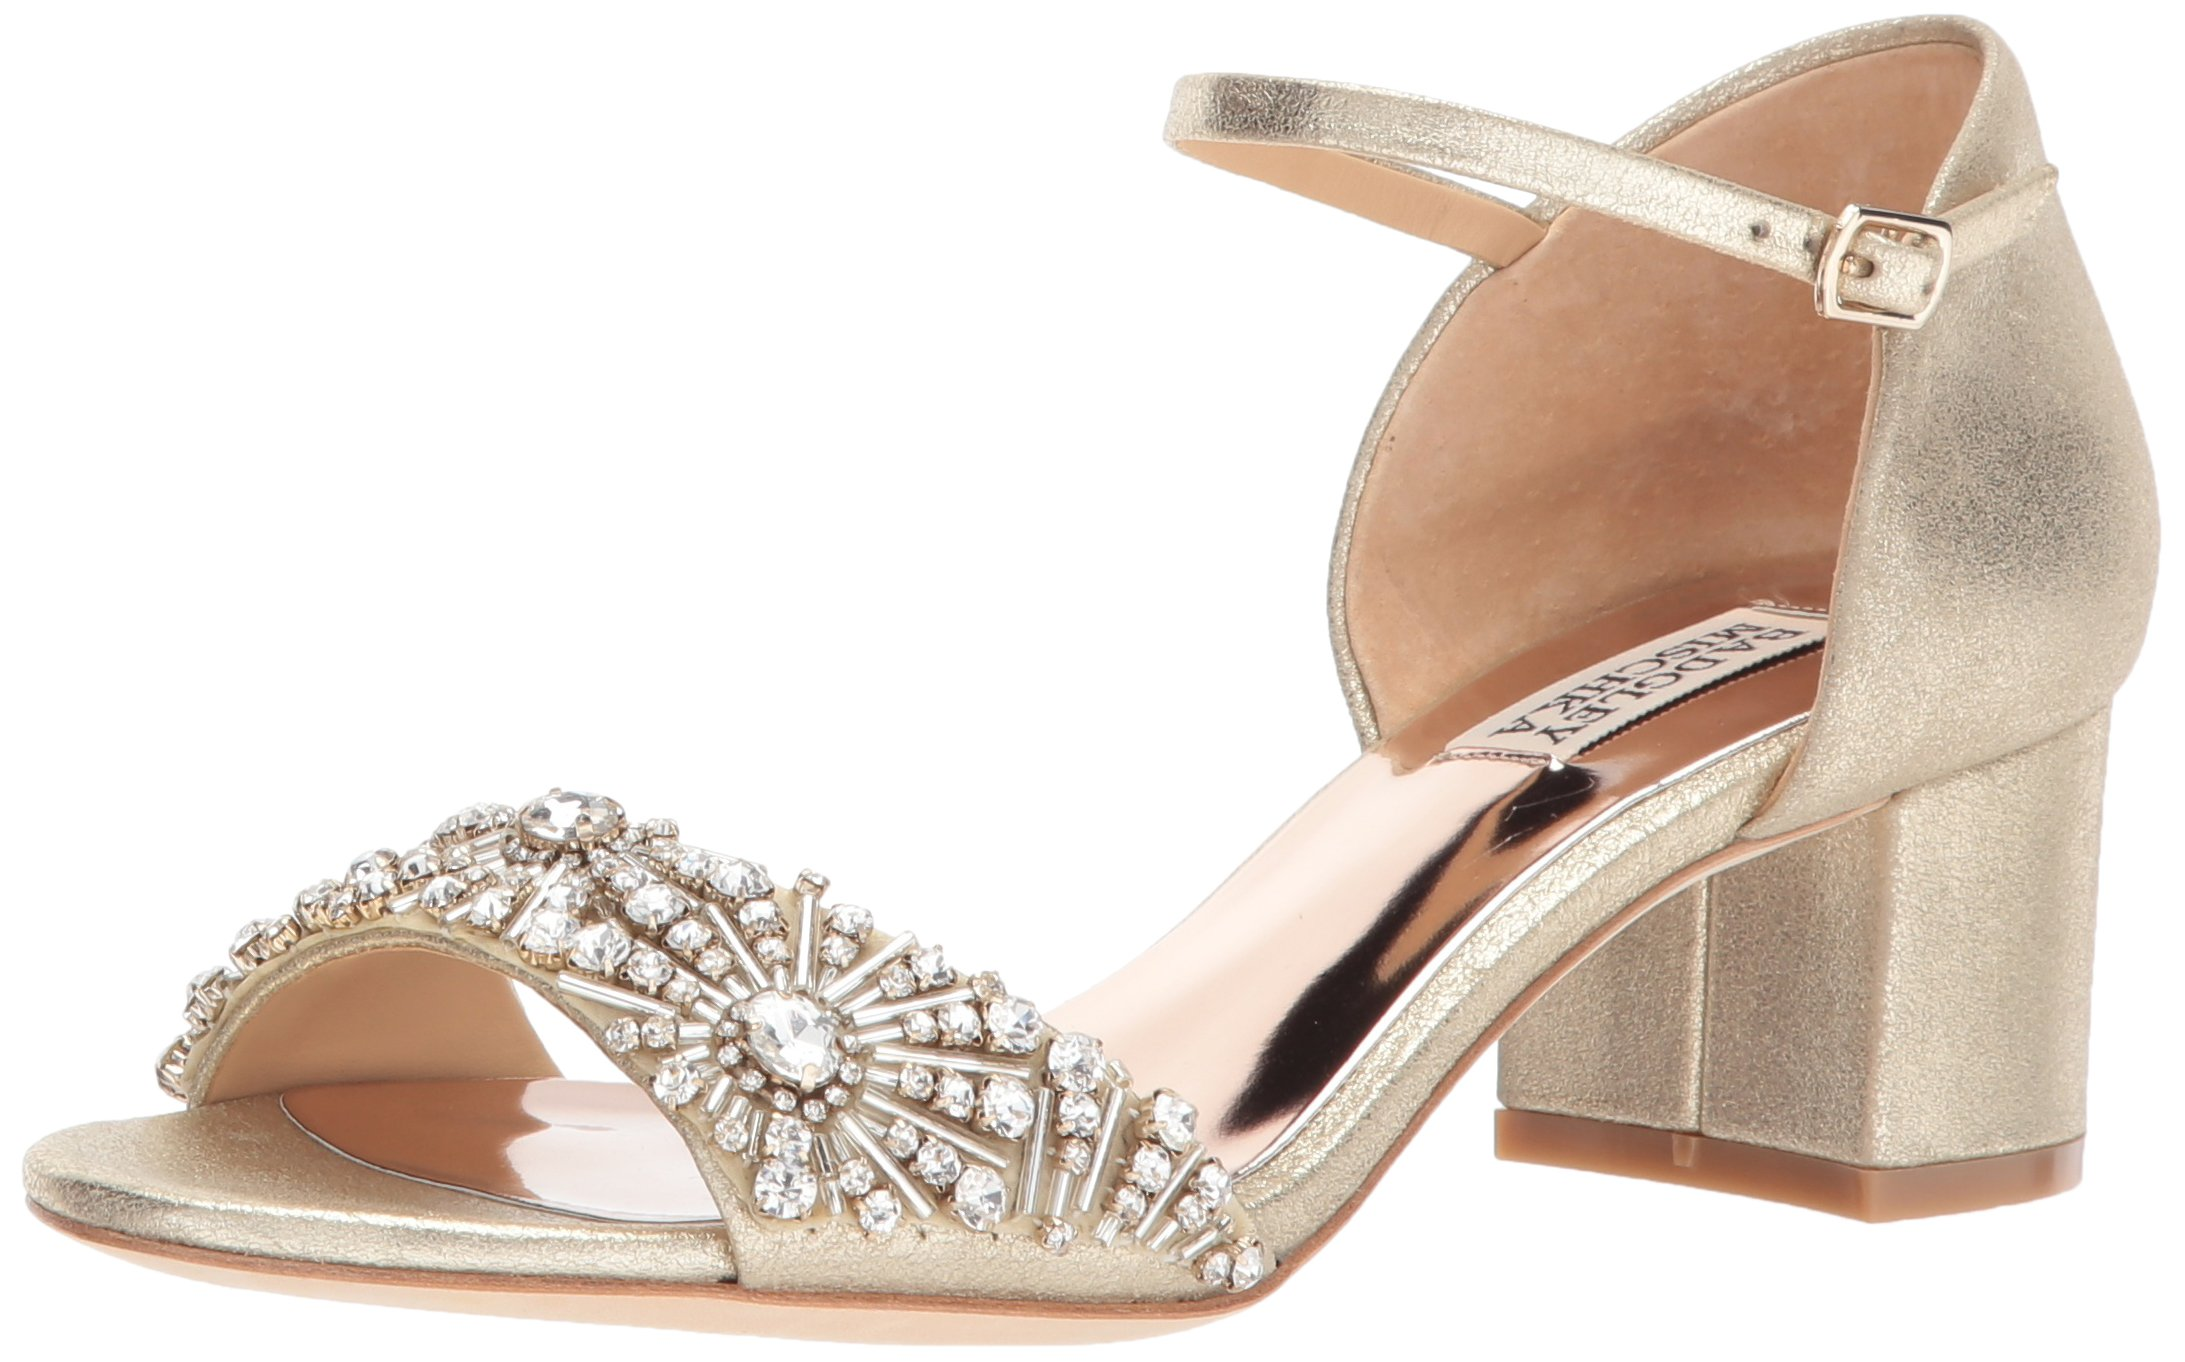 Badgley Mischka Women's Mareva Heeled Sandal, Platino, 8.5 M US